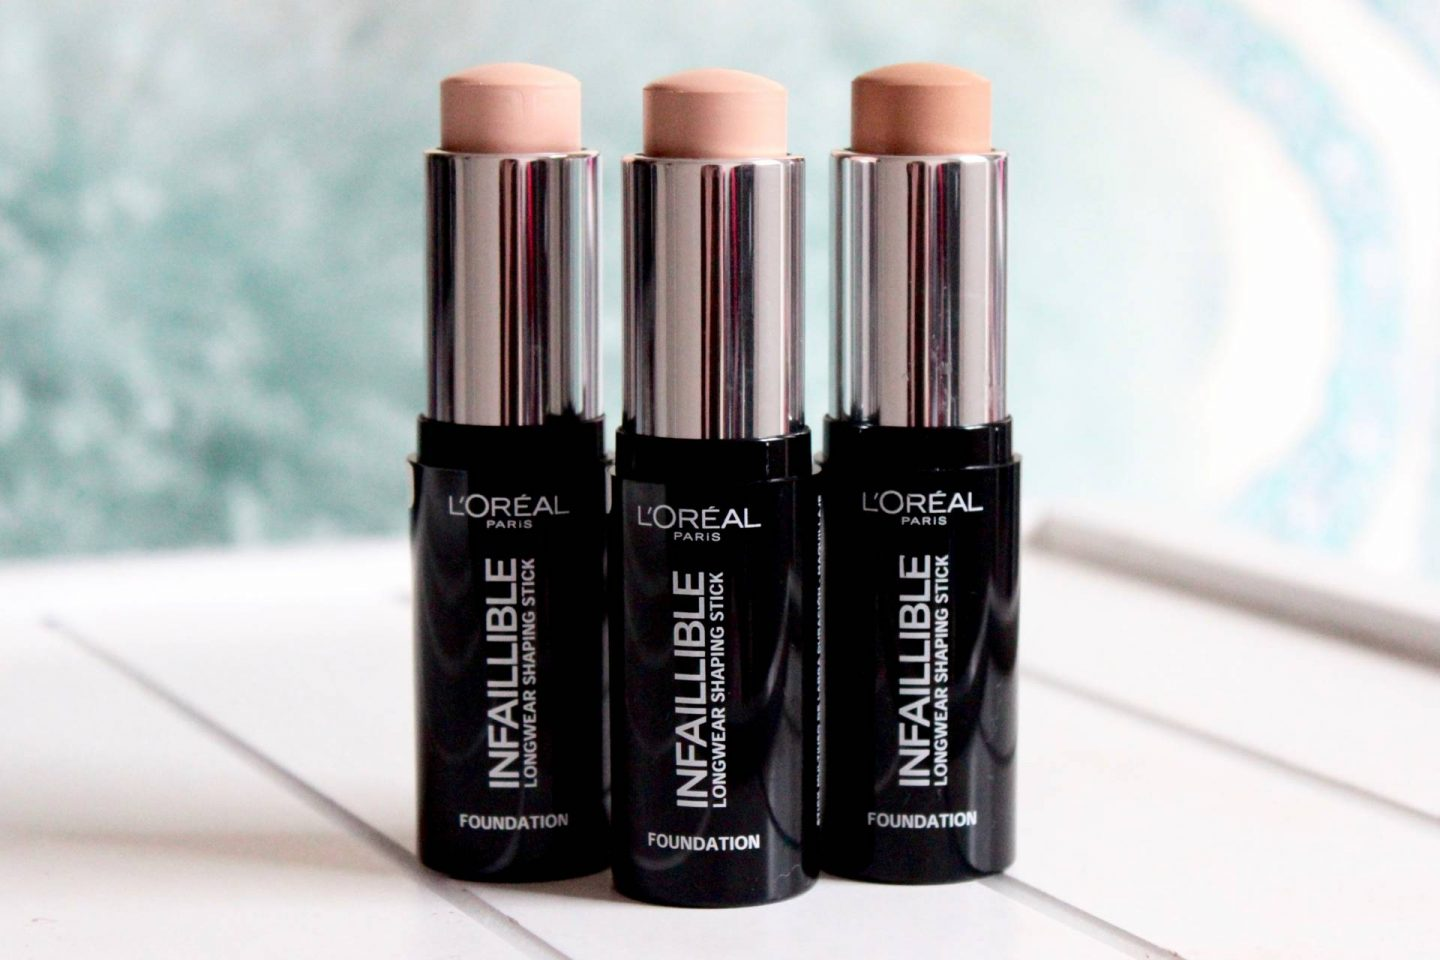 L'Oreal Infallible foundation shaping sticks